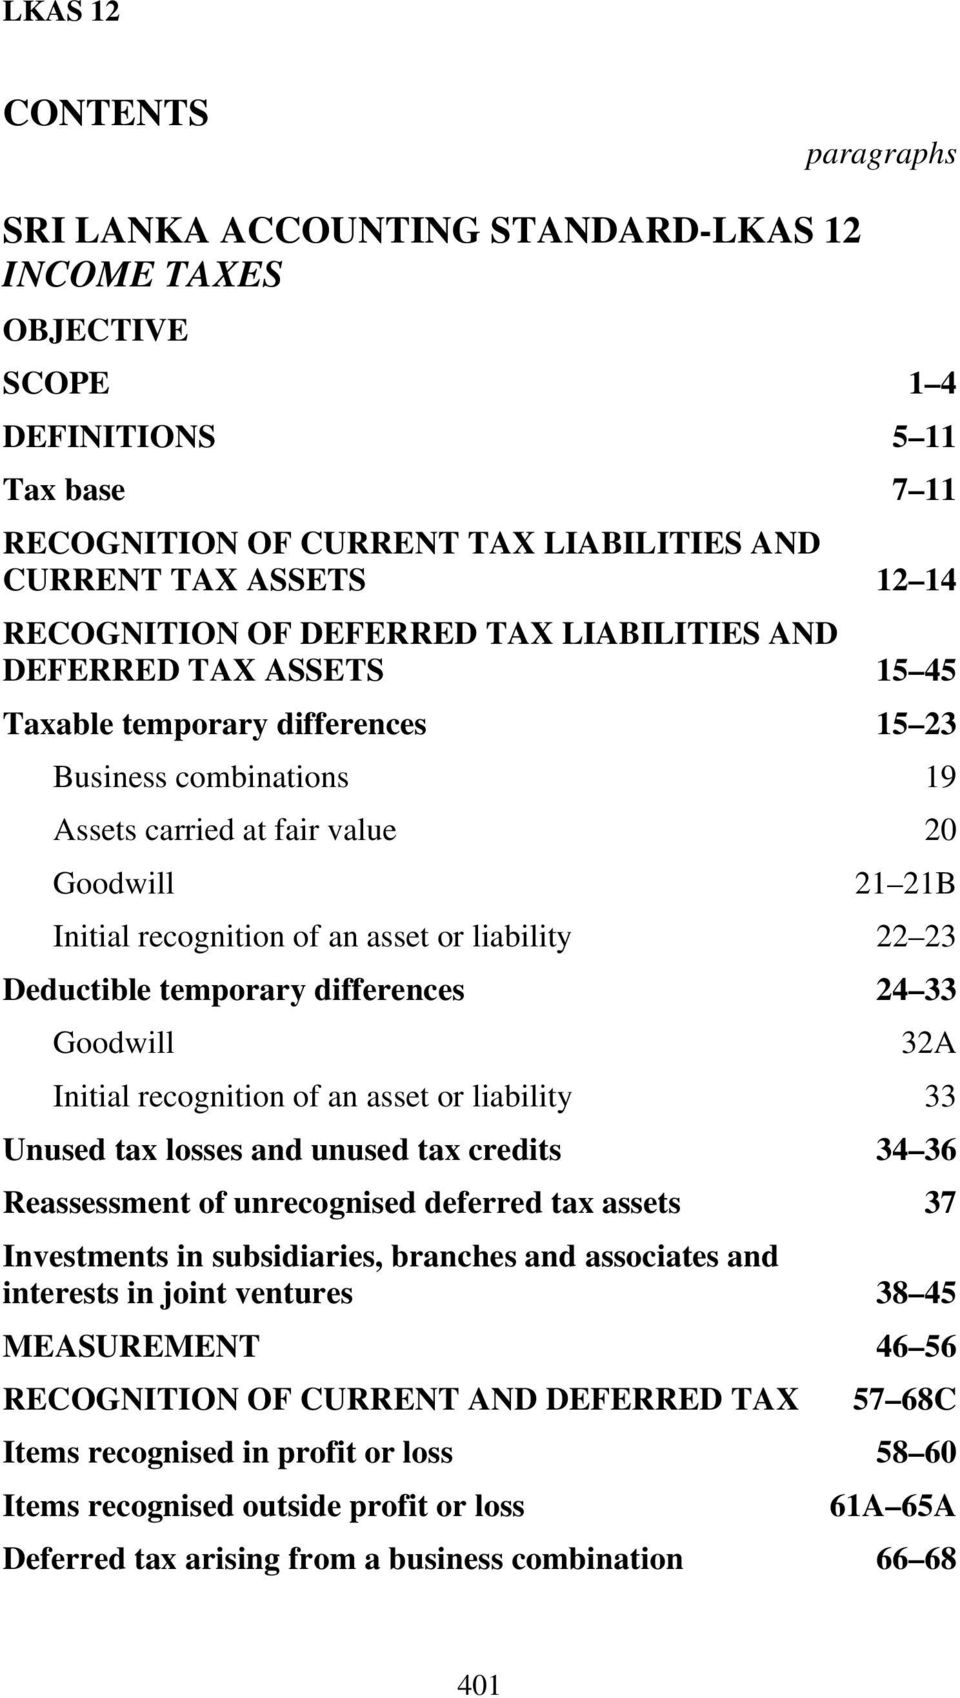 of an asset or liability 22 23 Deductible temporary differences 24 33 Goodwill 32A Initial recognition of an asset or liability 33 Unused tax losses and unused tax credits 34 36 Reassessment of